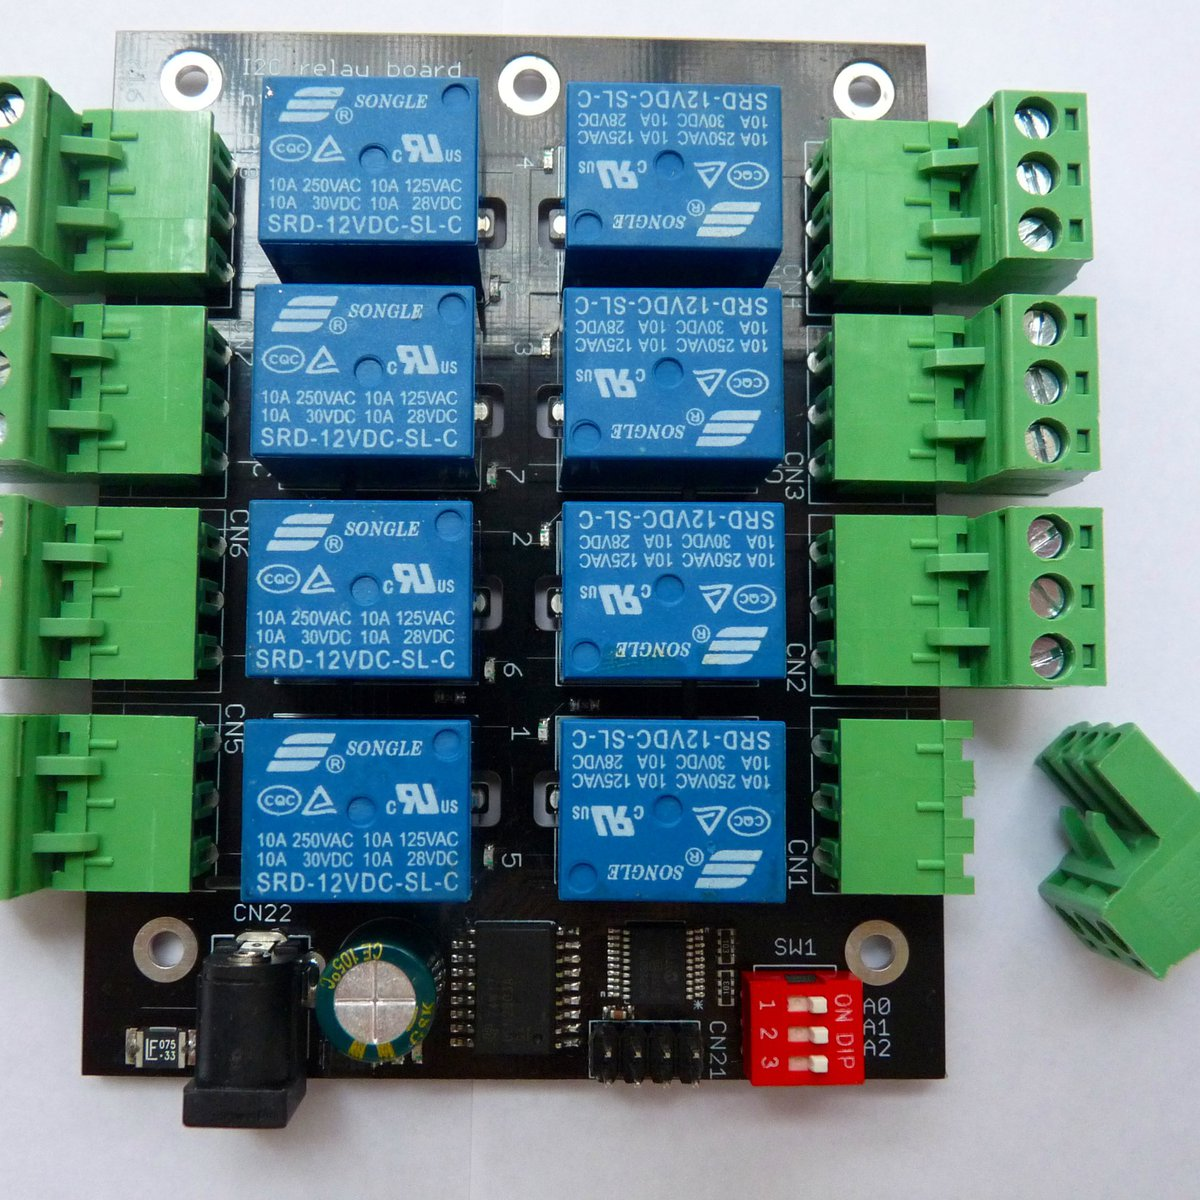 8 Channel Relay Board For Raspberry Pi And Arduino From Peter Jakab Solid State Form C On Tindie